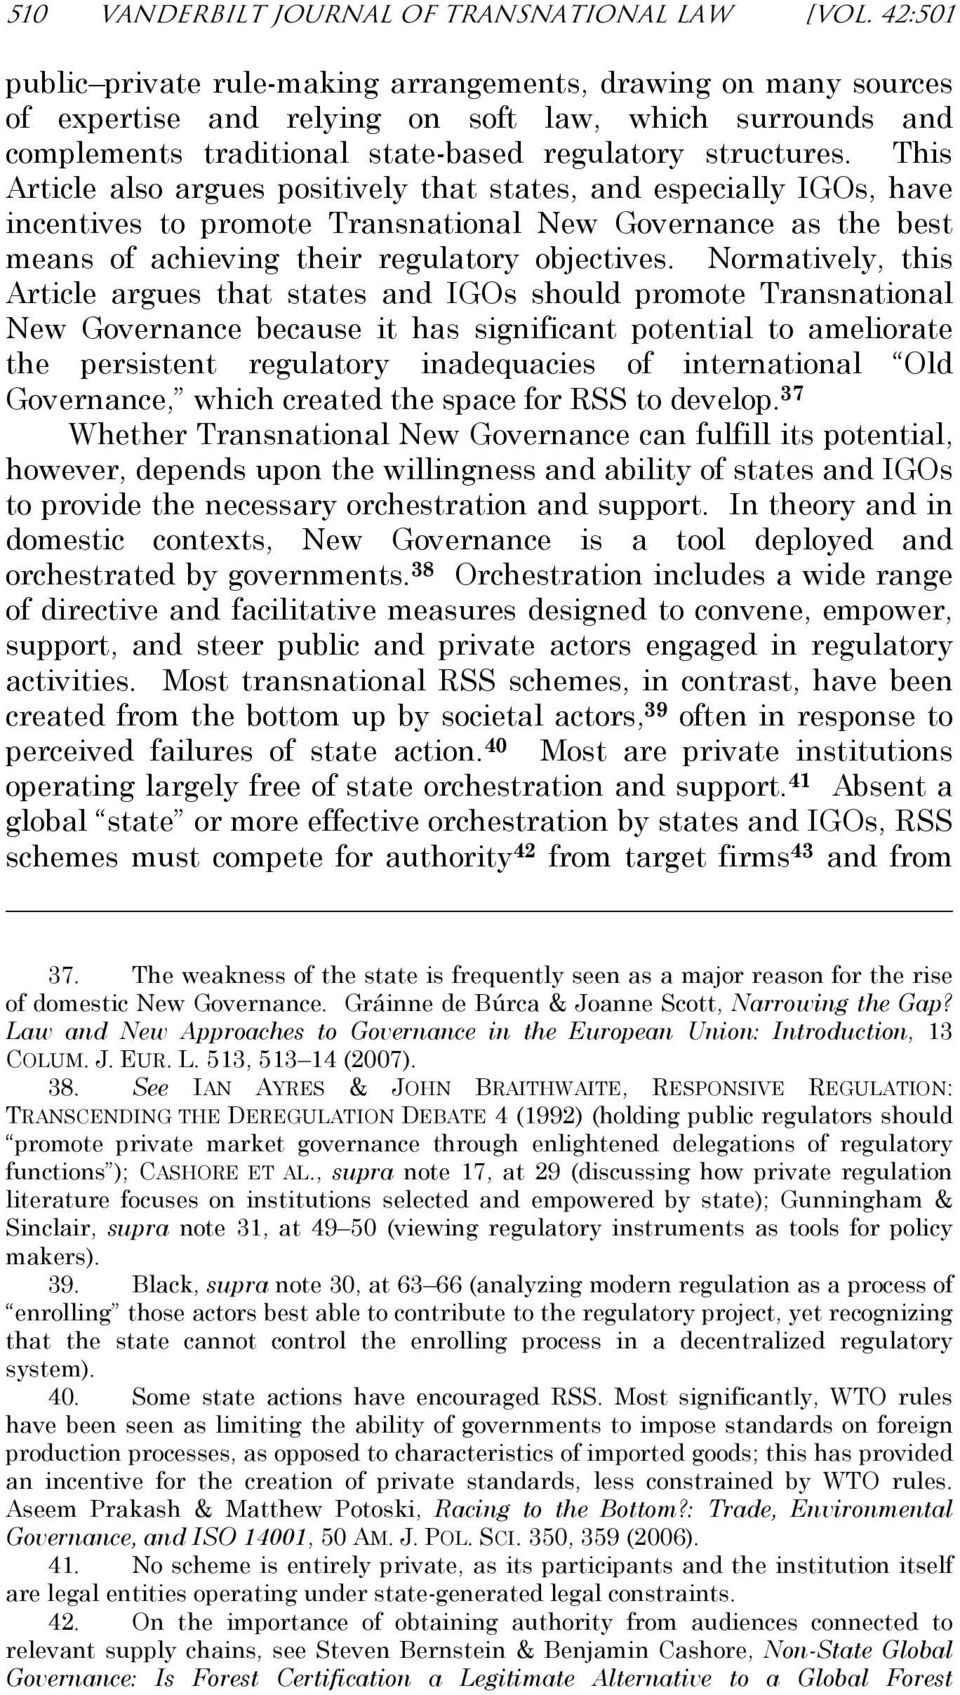 This Article also argues positively that states, and especially IGOs, have incentives to promote Transnational New Governance as the best means of achieving their regulatory objectives.